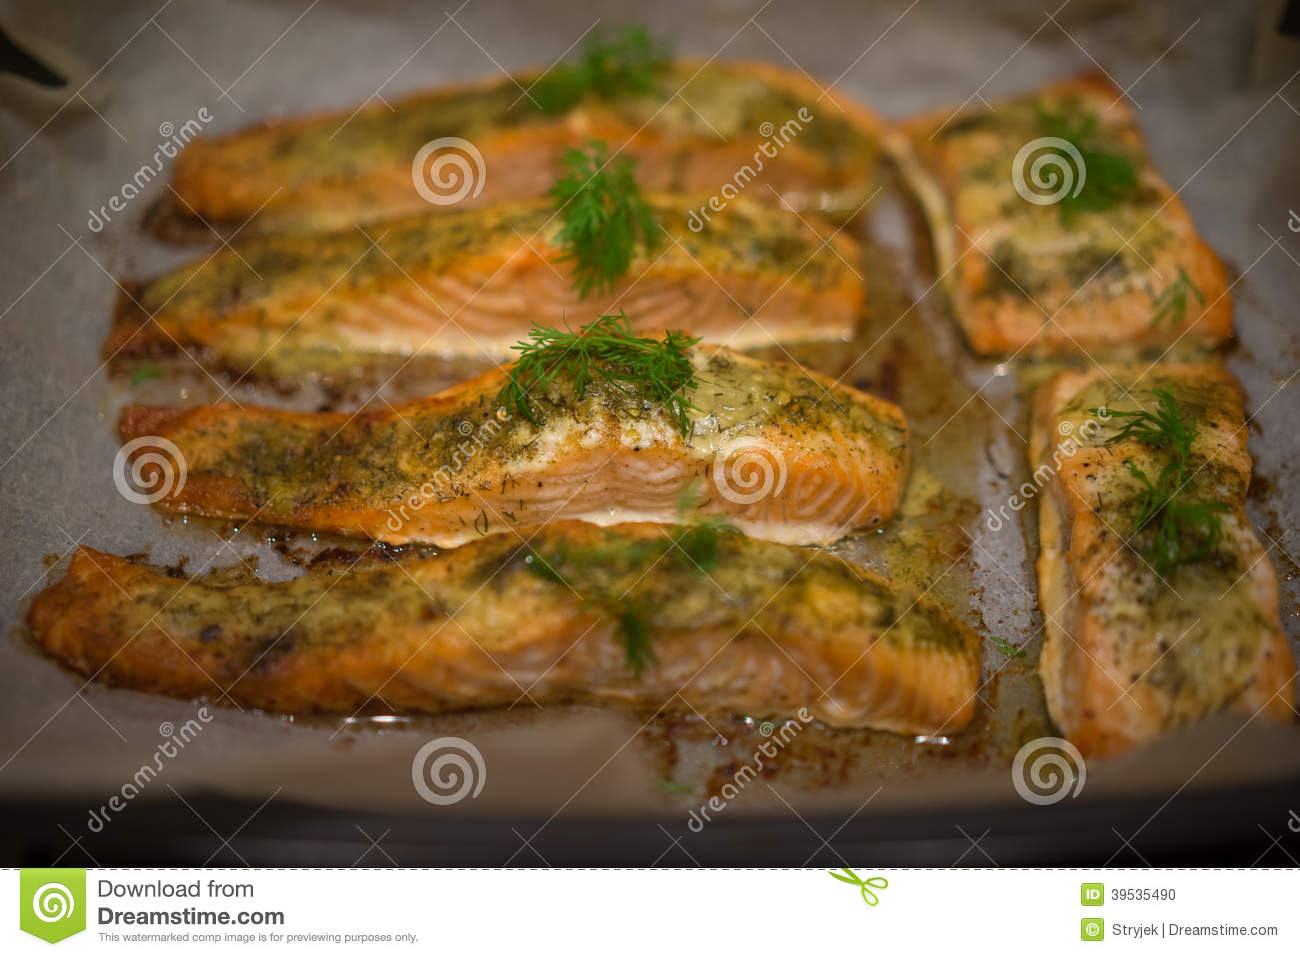 Seasoned savory fish fillets for How to season fish for frying